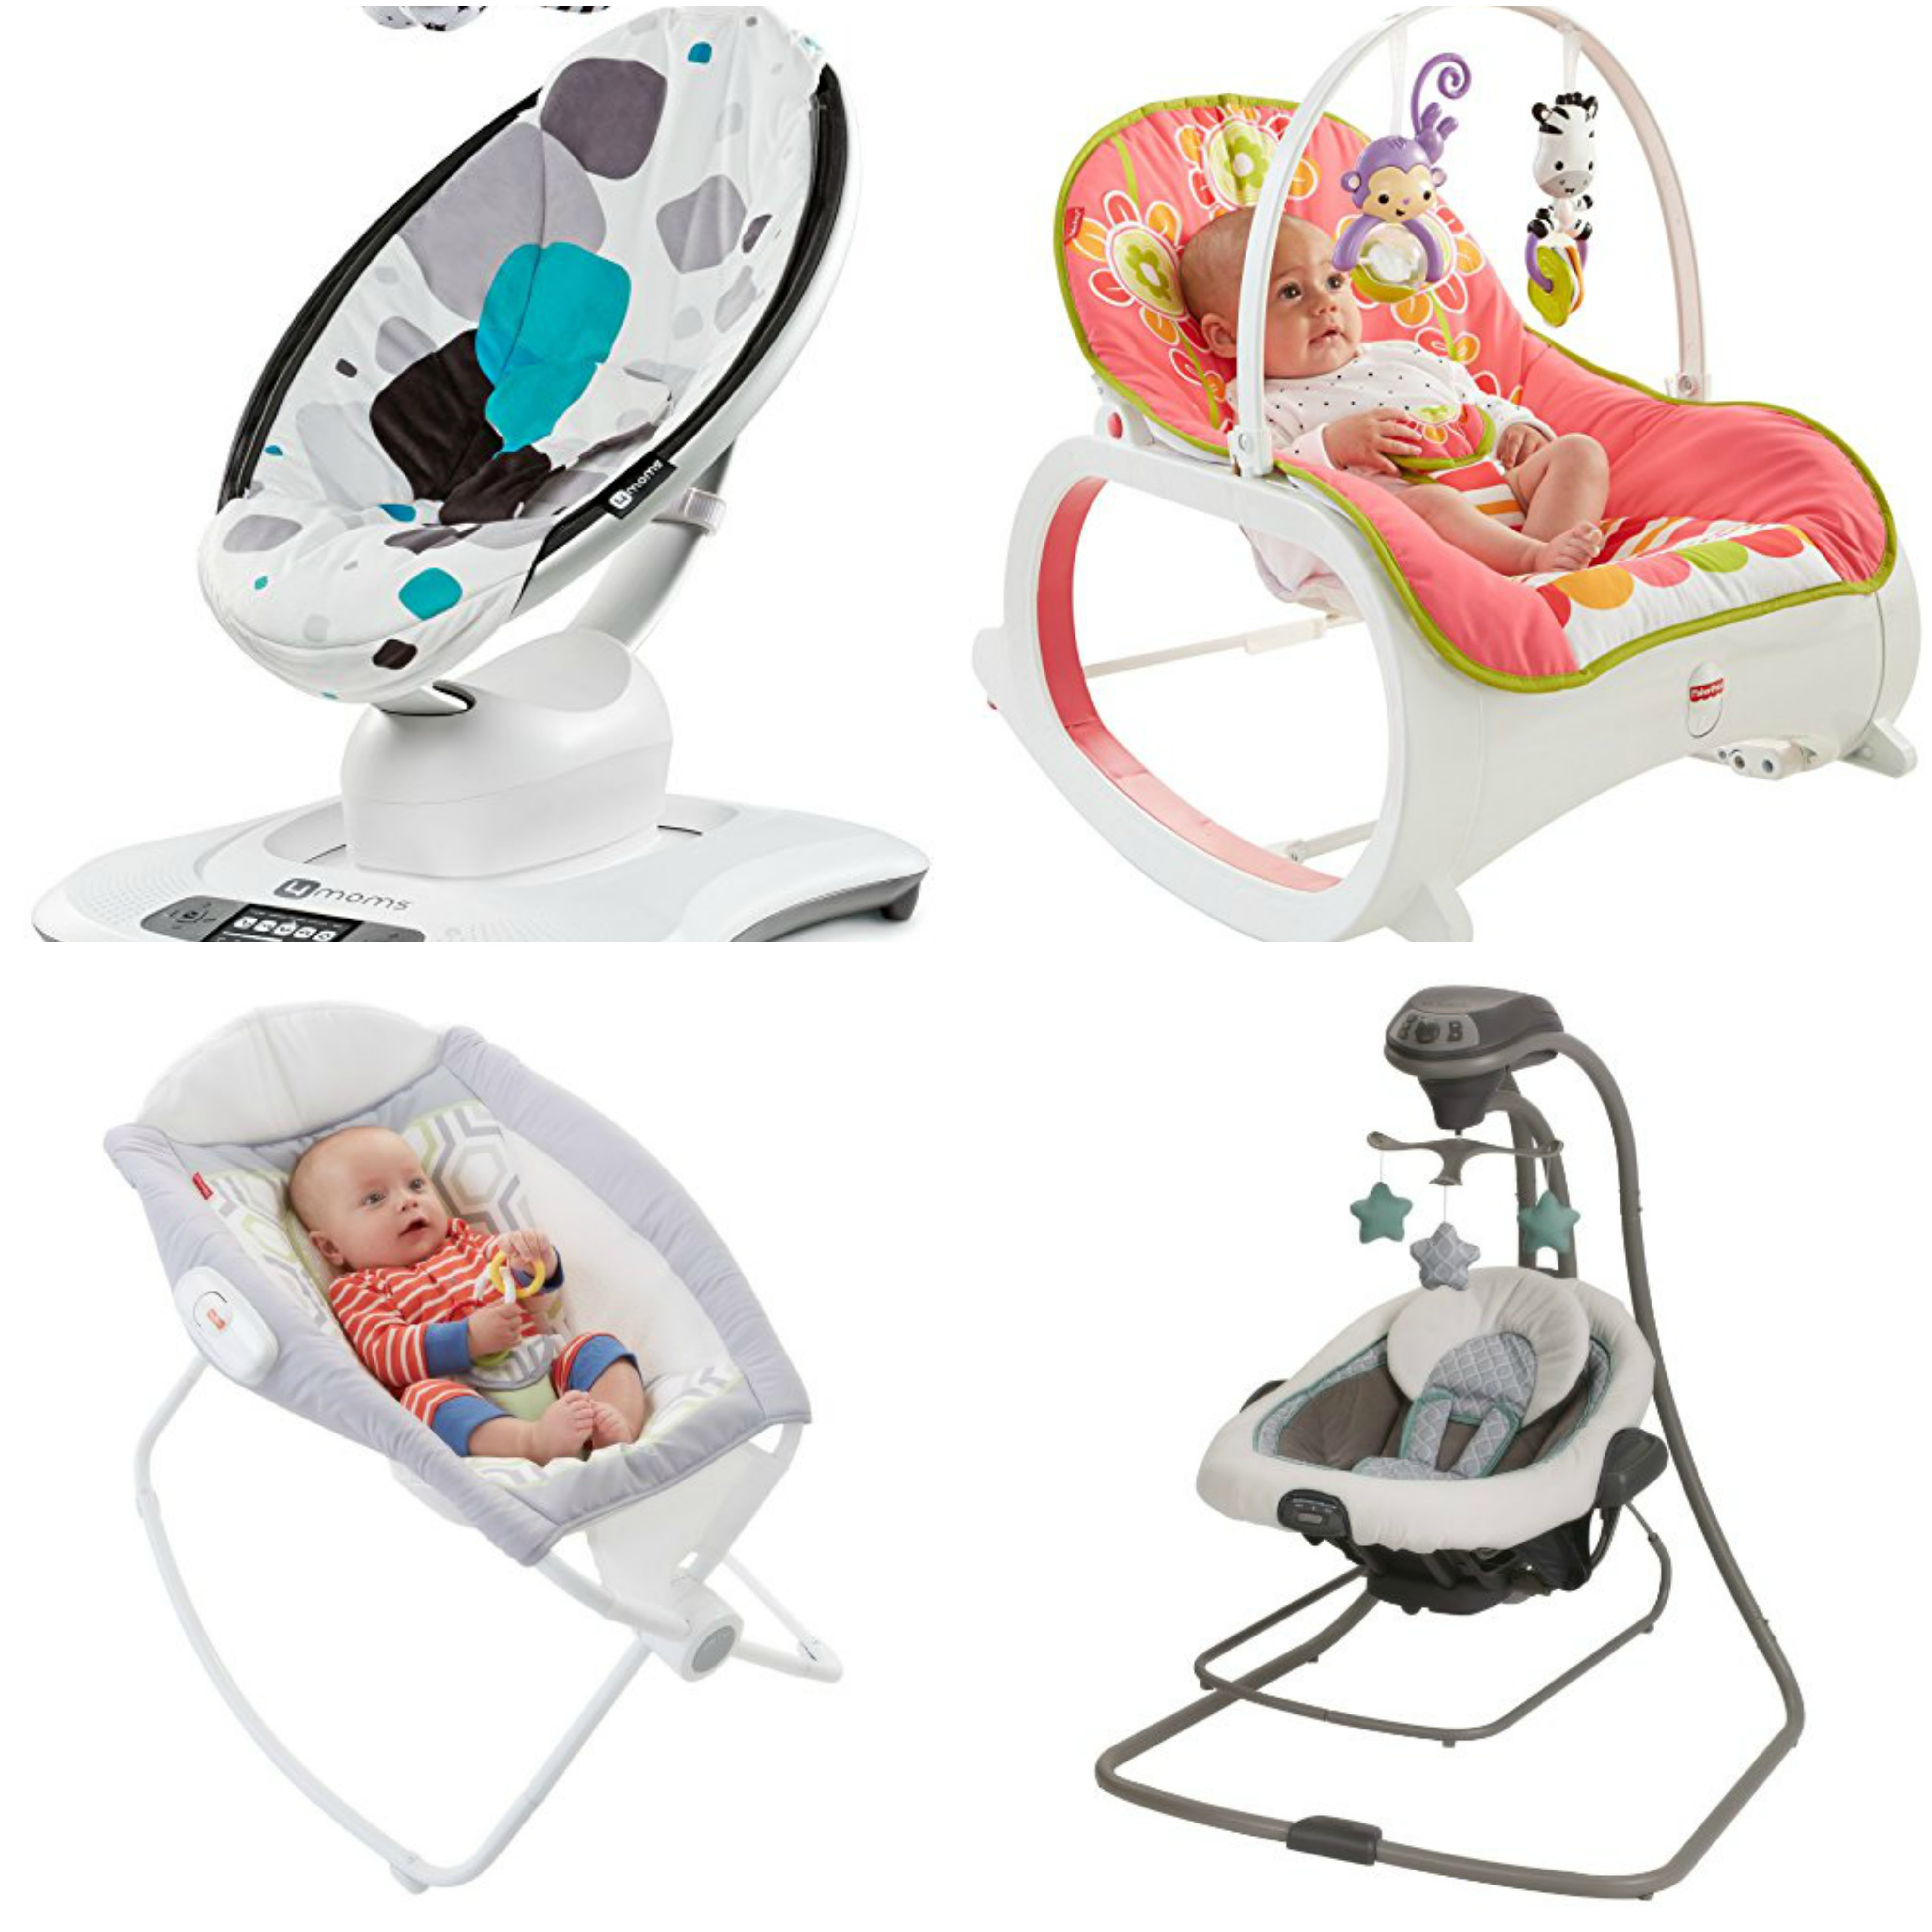 Product Review: Baby Bouncers and Rockers